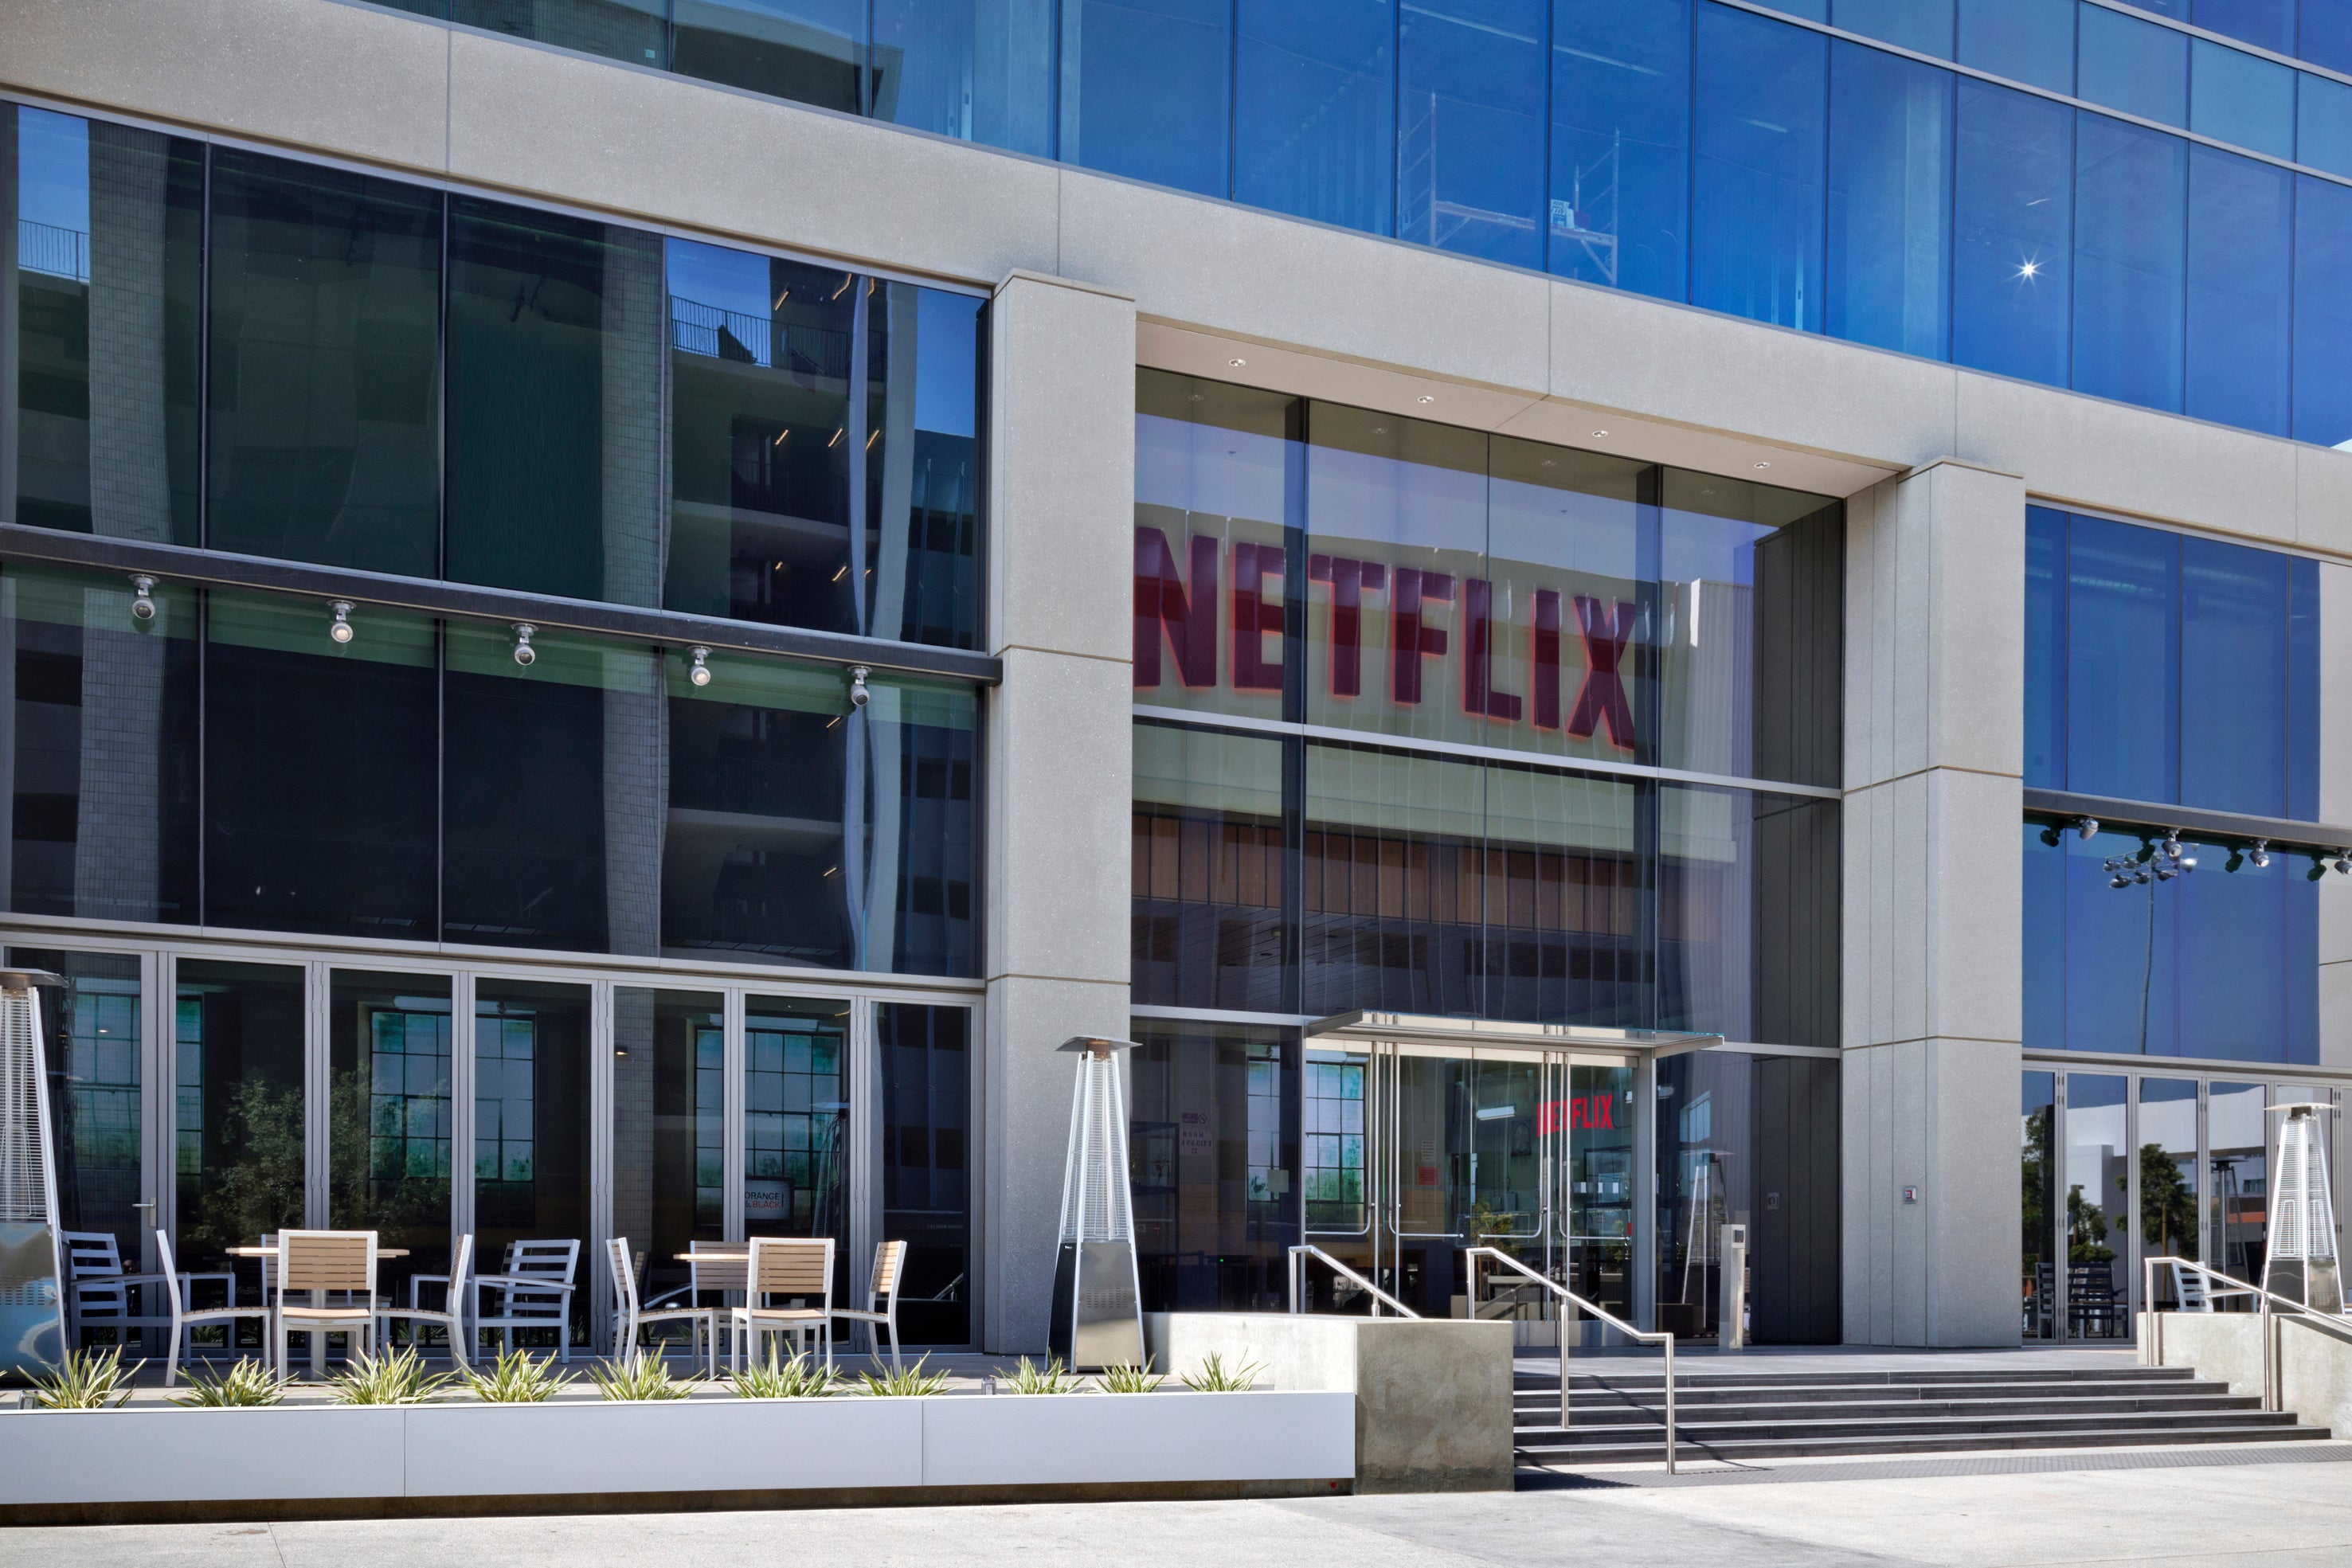 The entrance at Netflix's Los Angeles headquarters, with the company logo emblazoned above the door.